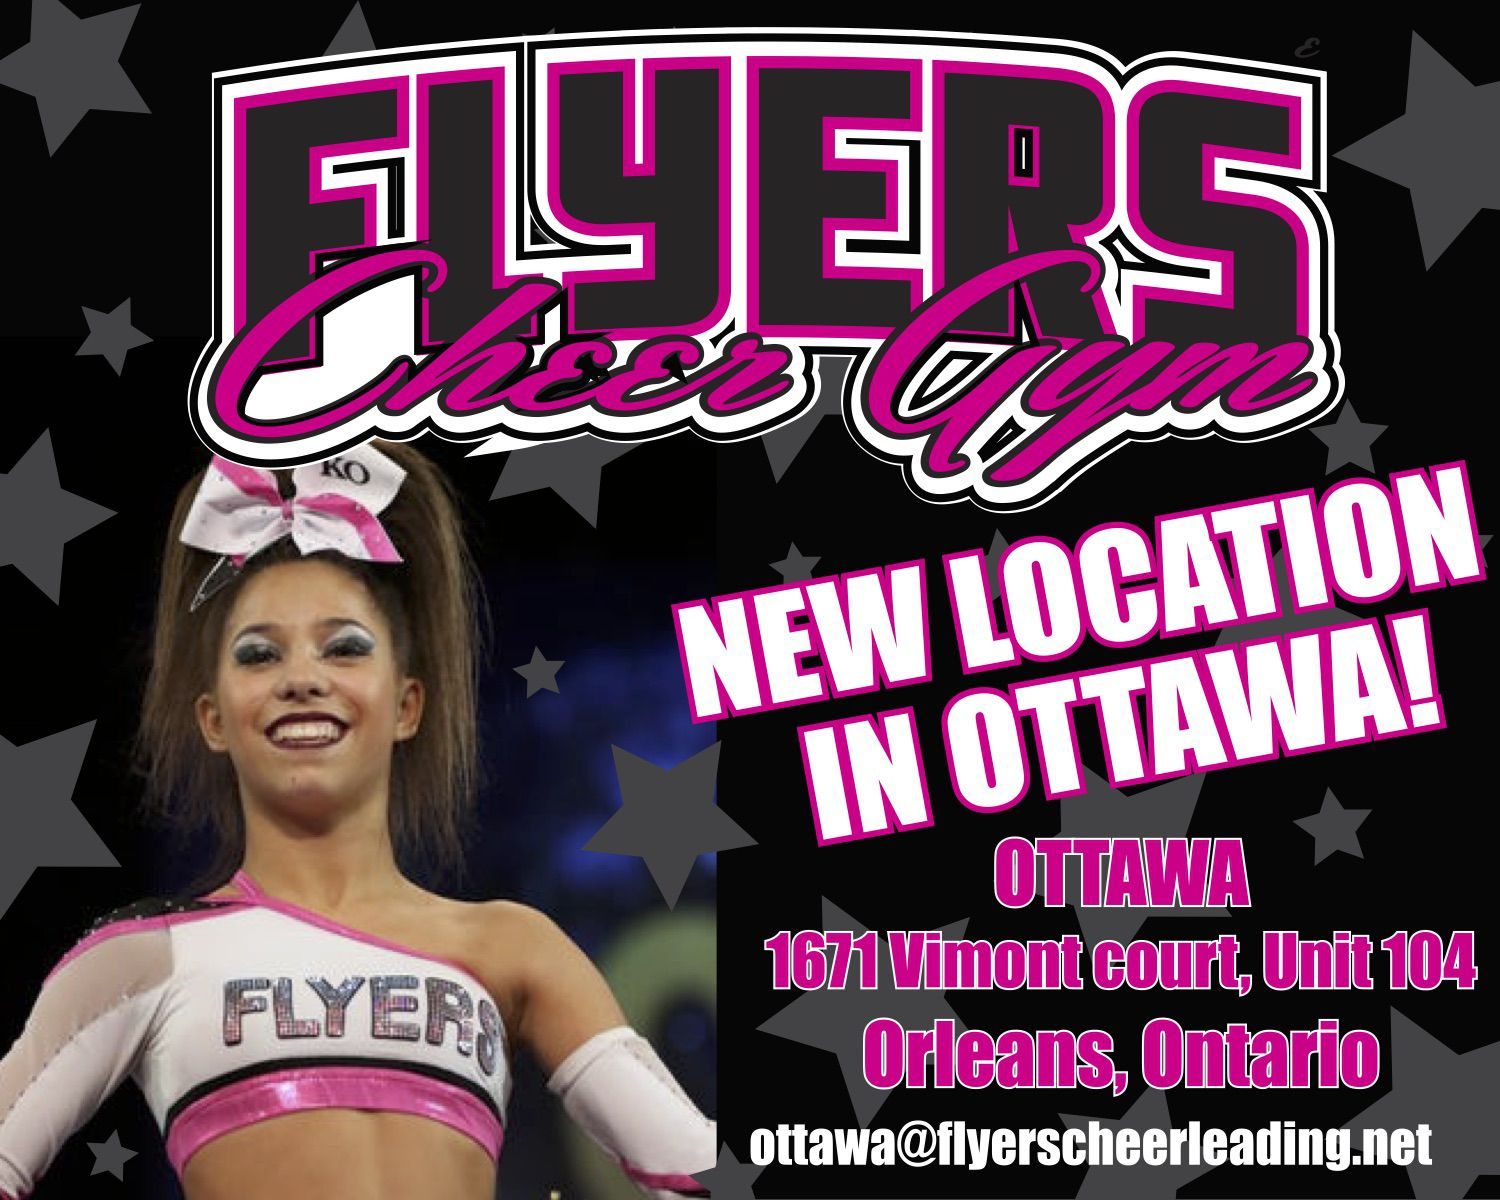 flyers cheerleading flyers all starz ottawa